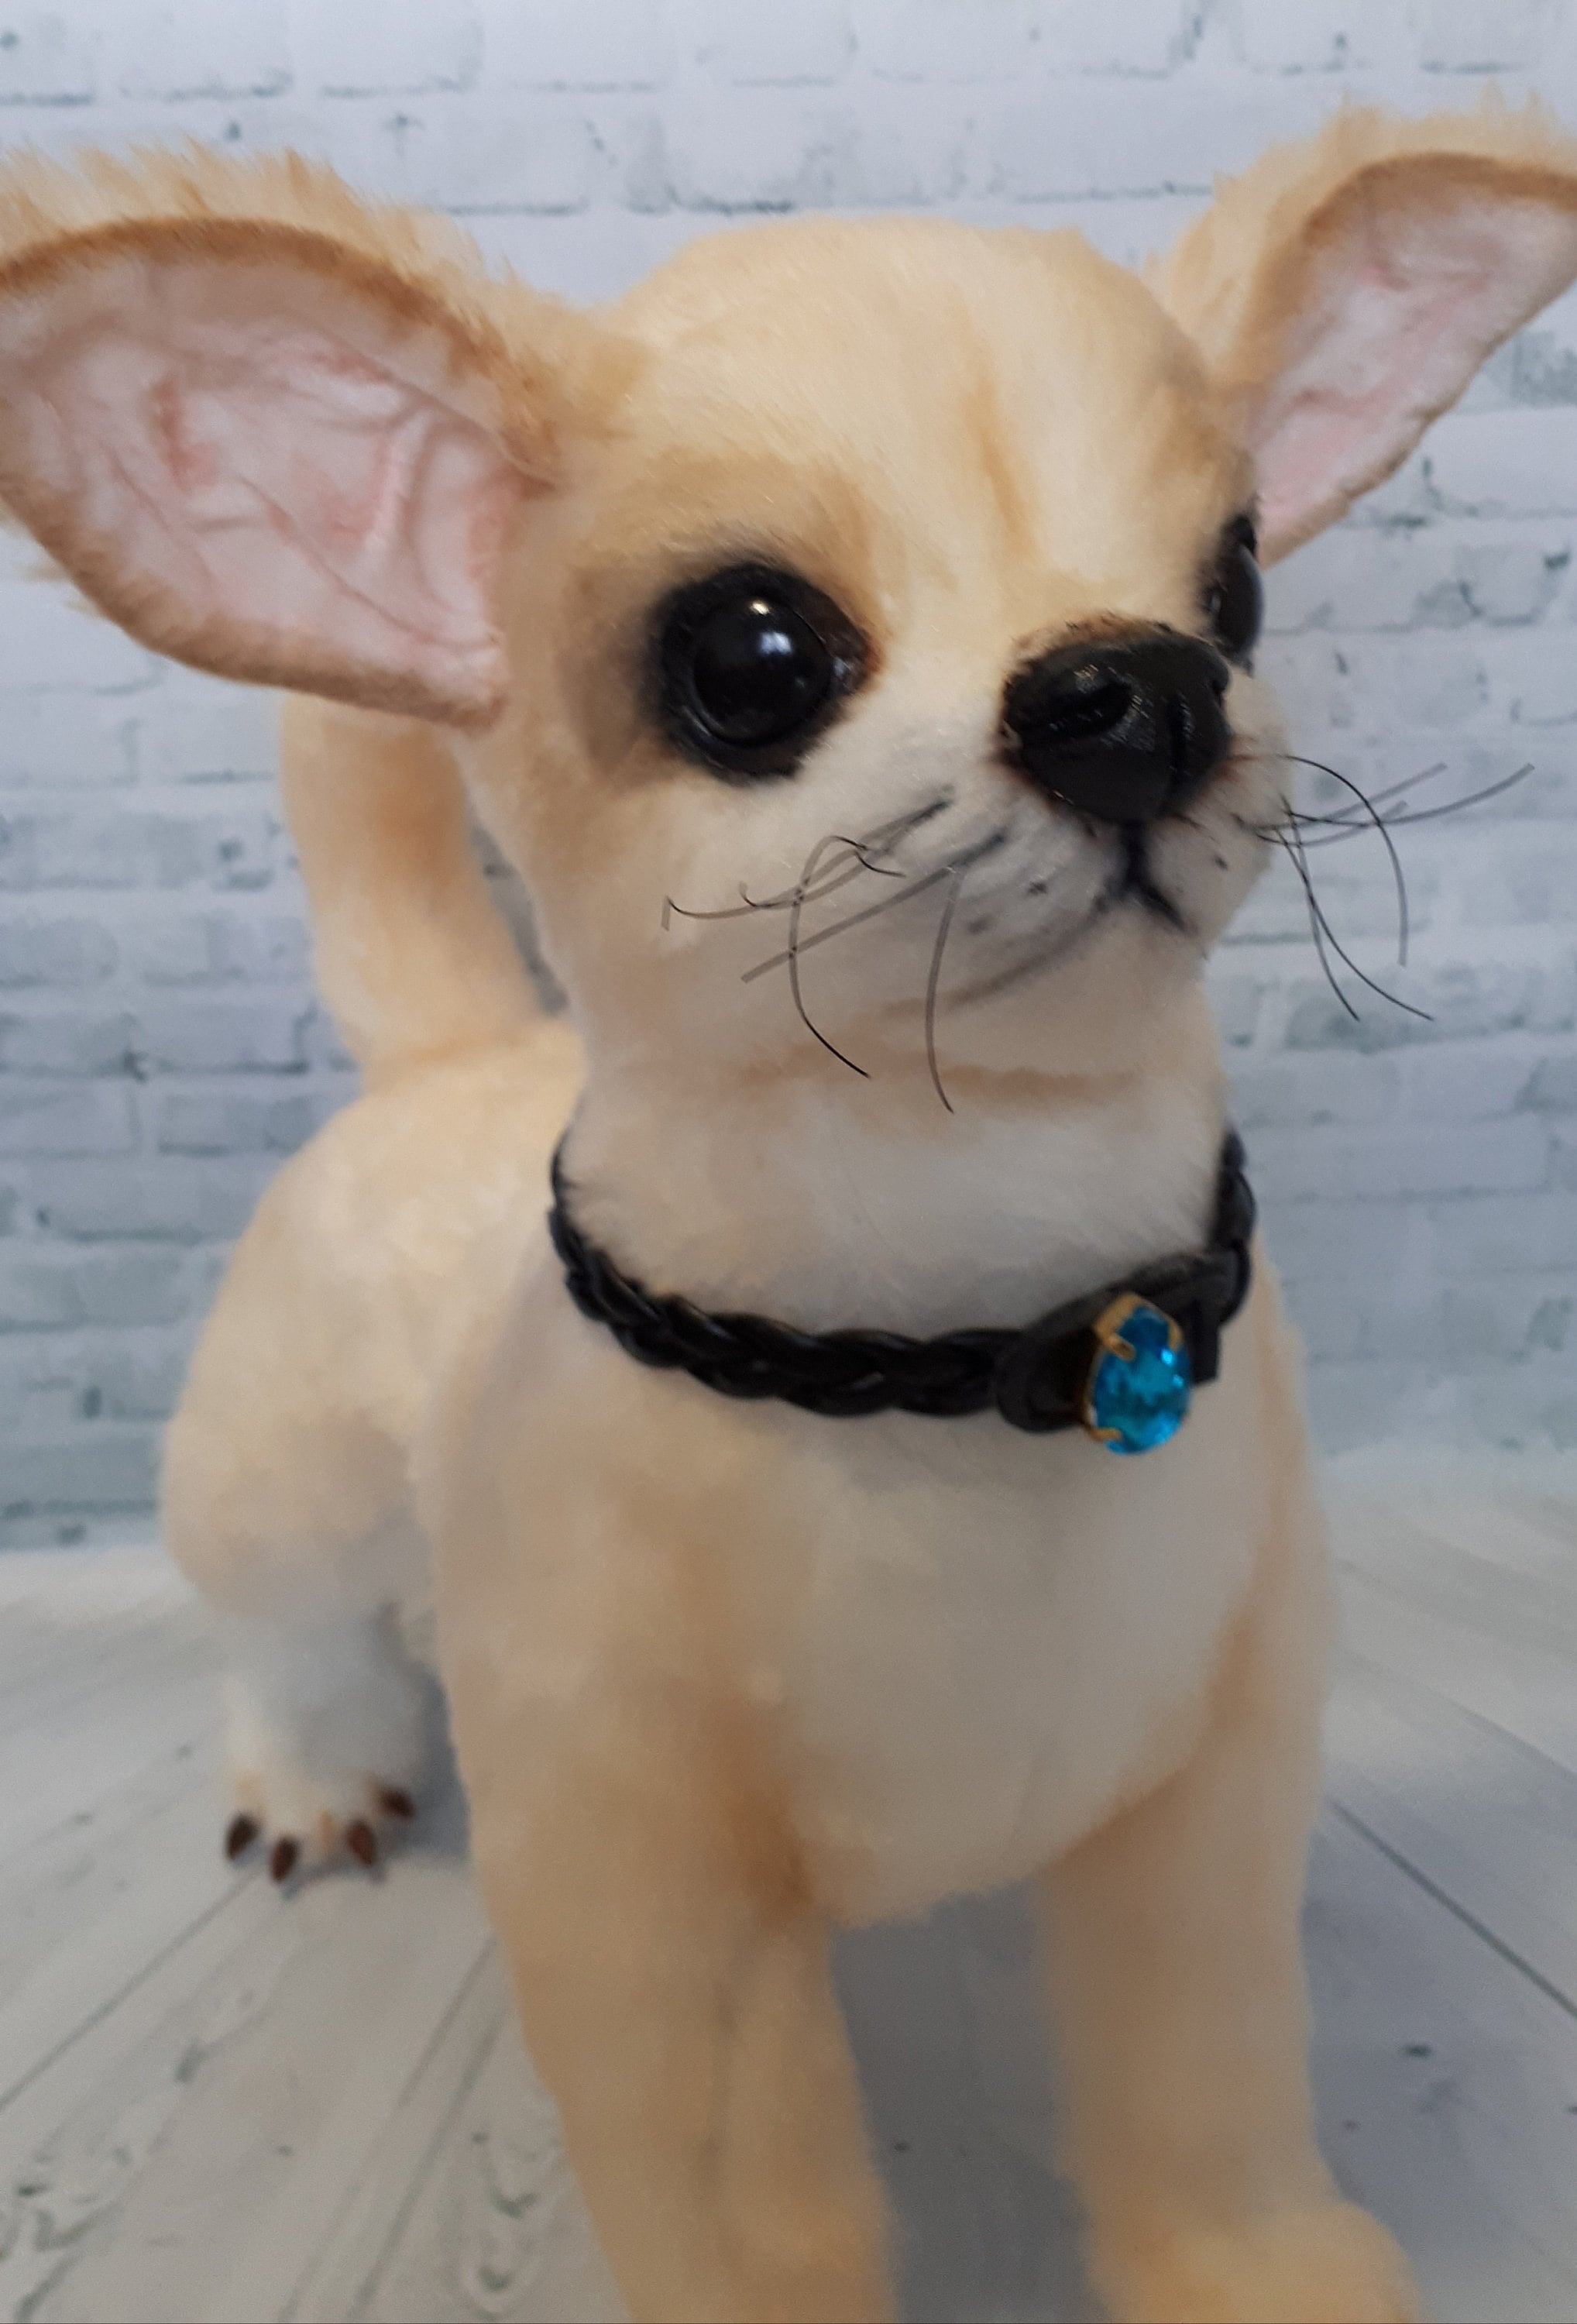 Animal Realistic Plush Toy Chihuahua Stuffed Animal Dog Etsy